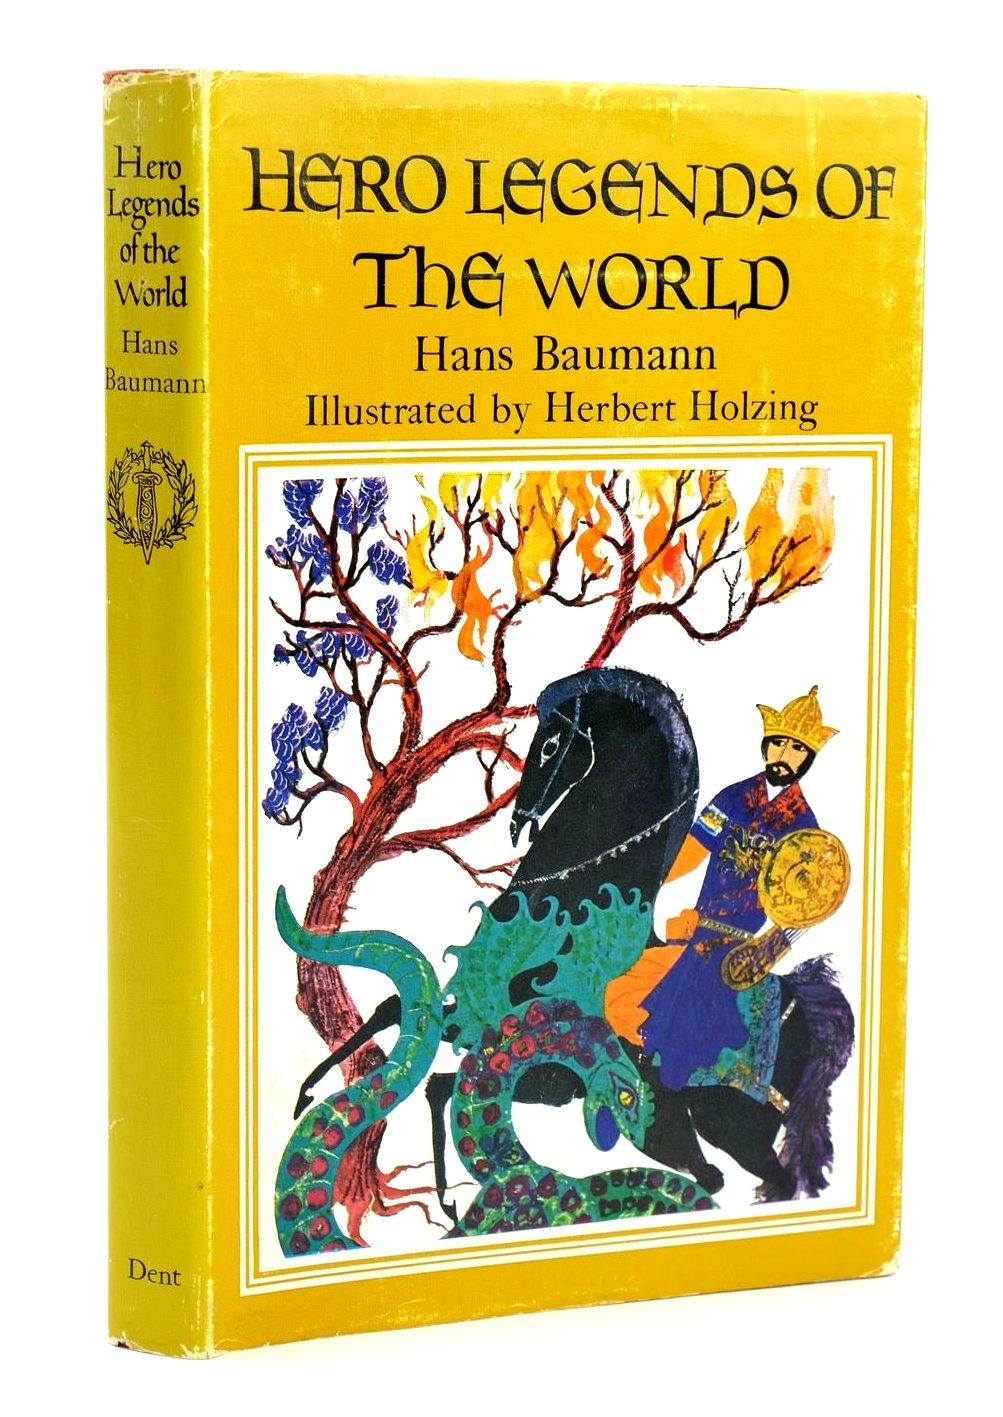 Photo of HERO LEGENDS OF THE WORLD written by Baumann, Hans illustrated by Holzing, Herbert published by J.M. Dent & Sons Ltd. (STOCK CODE: 1319199)  for sale by Stella & Rose's Books